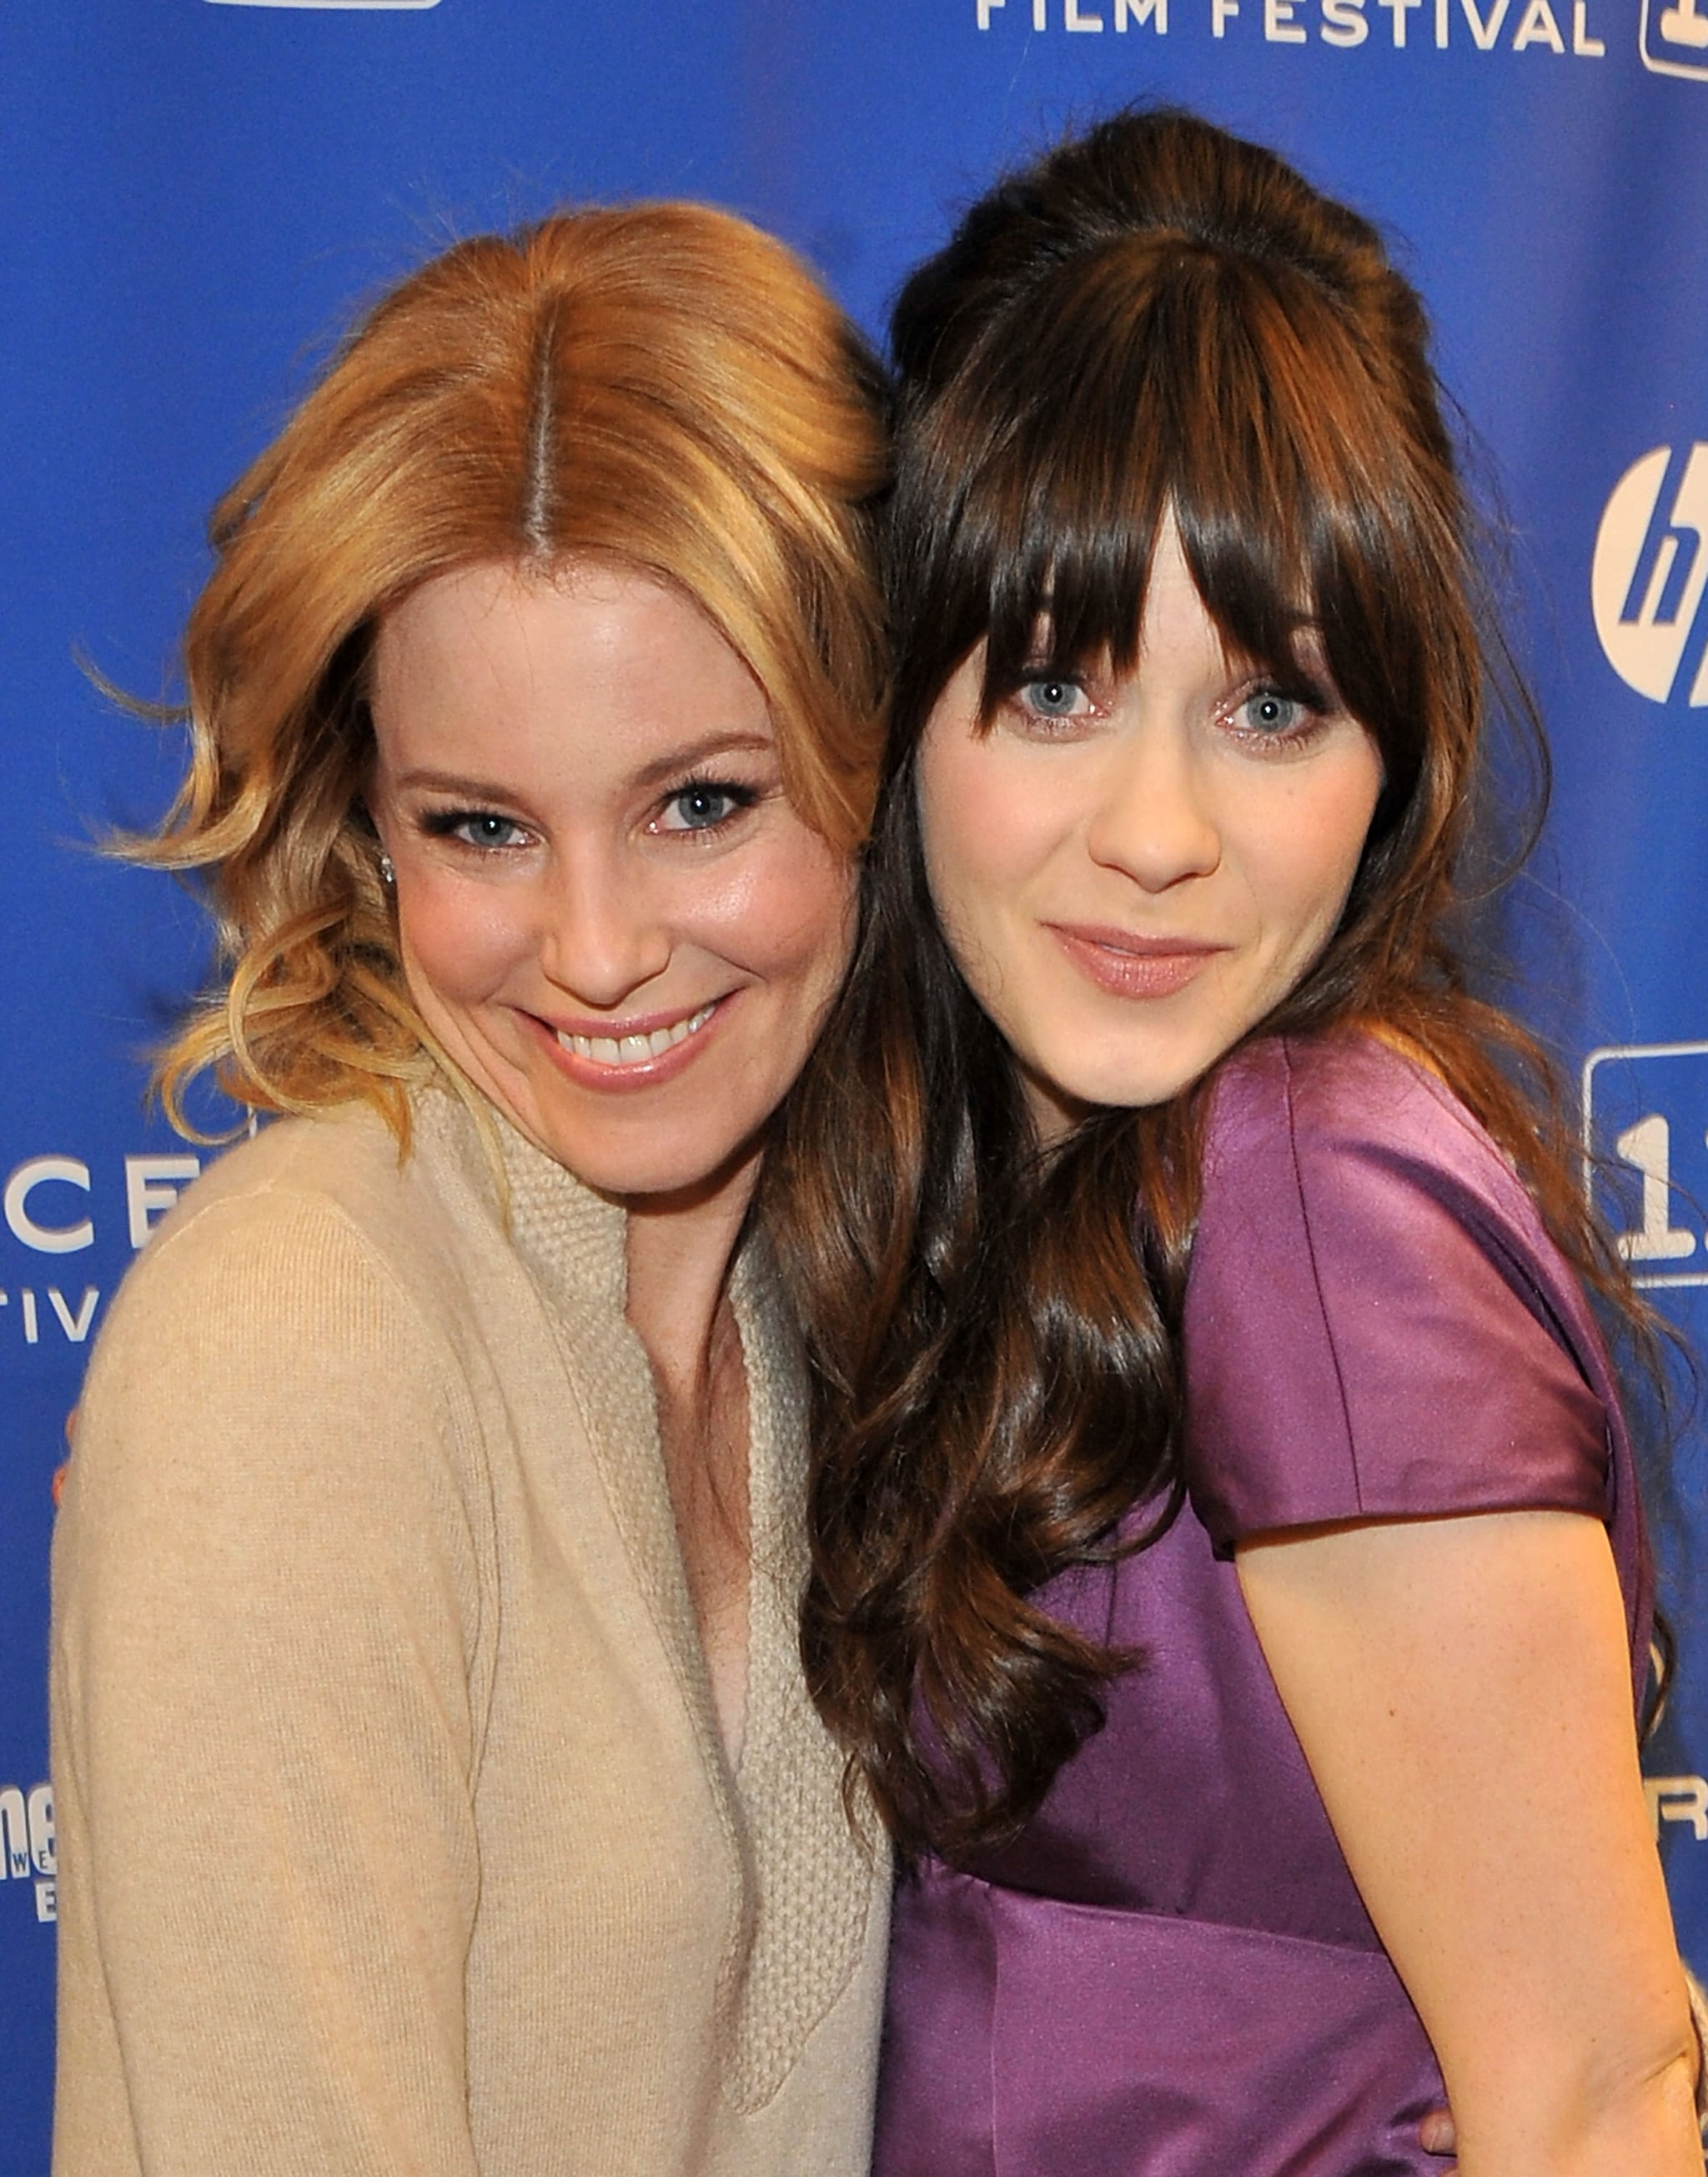 Elizabeth Banks and Zooey Deschanel hung out at the premiere of My Idiot Brother in 2011.